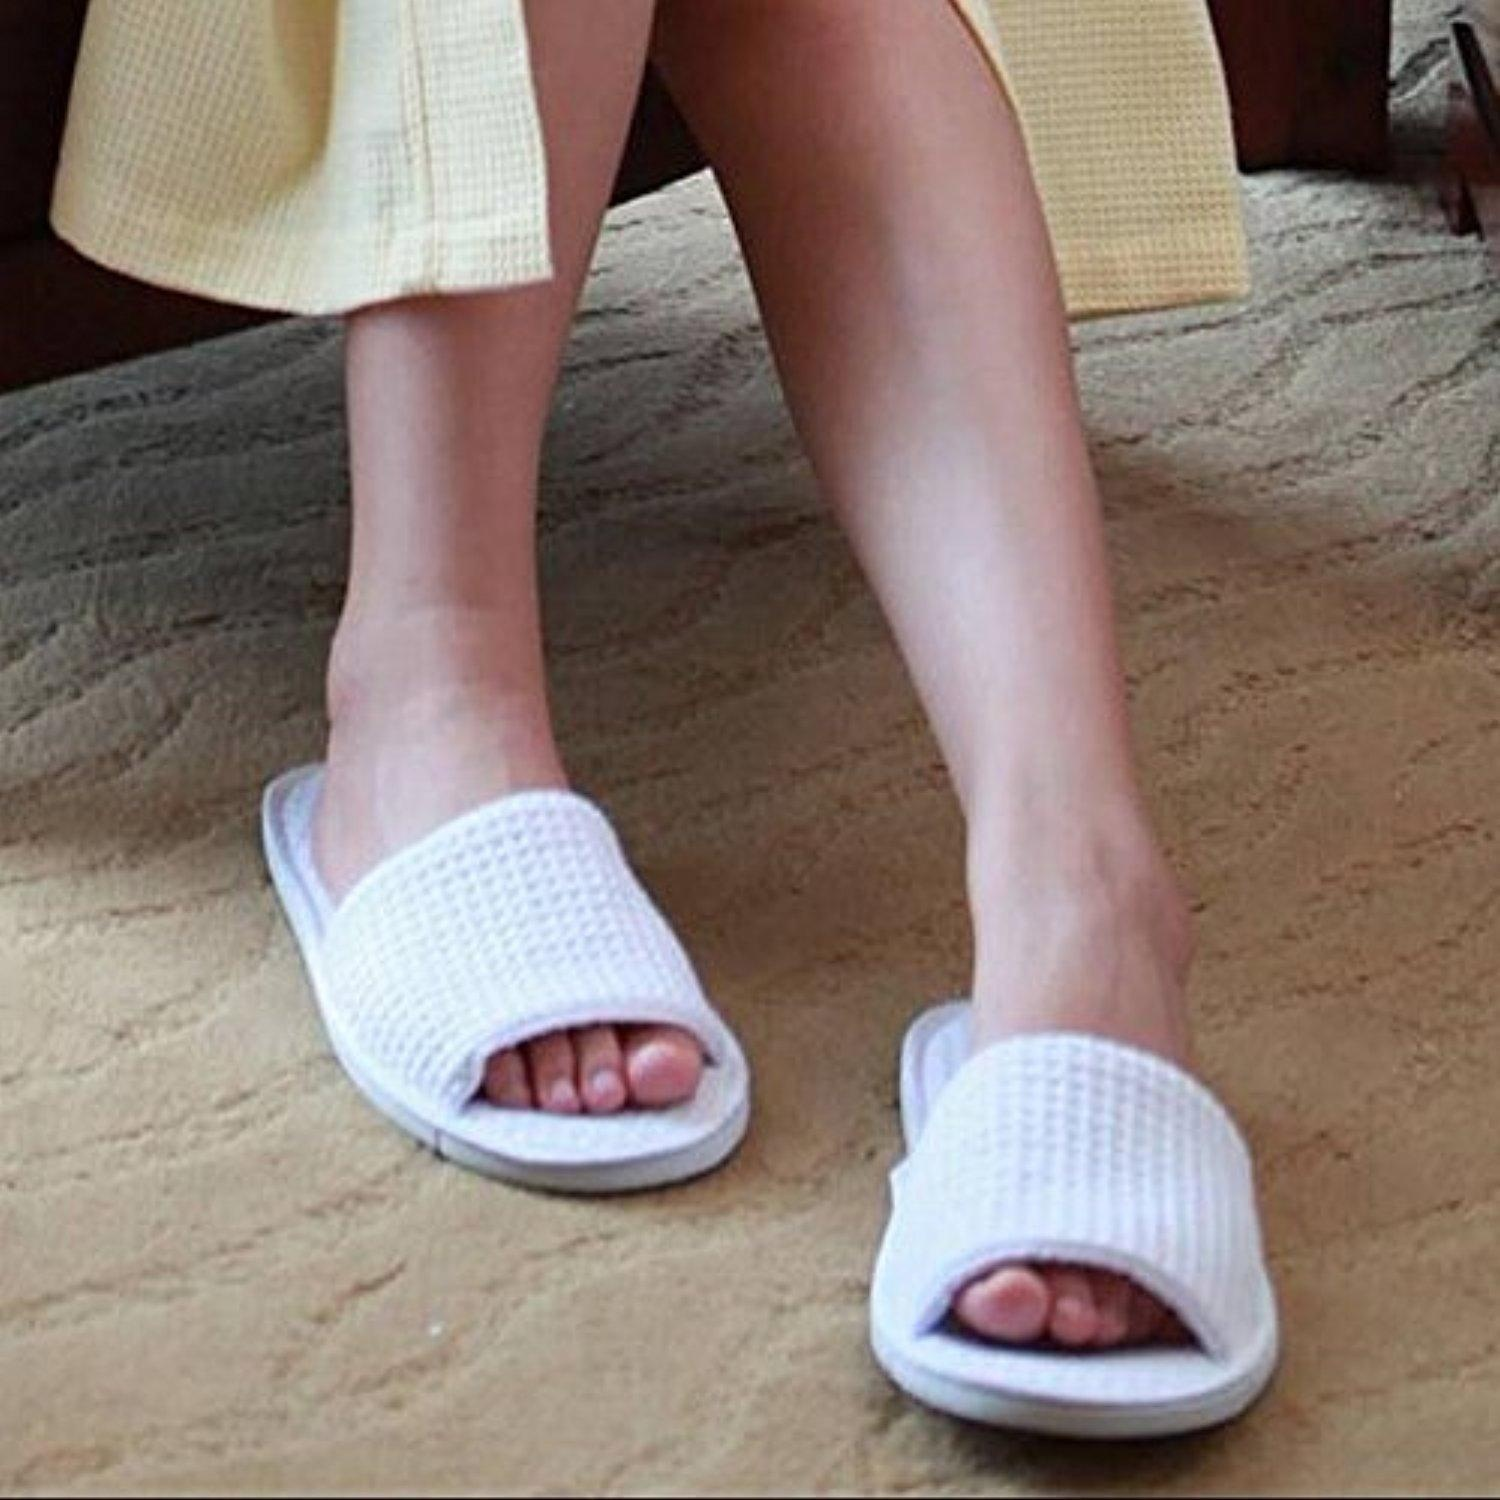 1Pair Unisex Pure white SPA slipper Open toe Closed-toe General Disposable Hotel slippers Home indoor slipper for guest (Open toe)